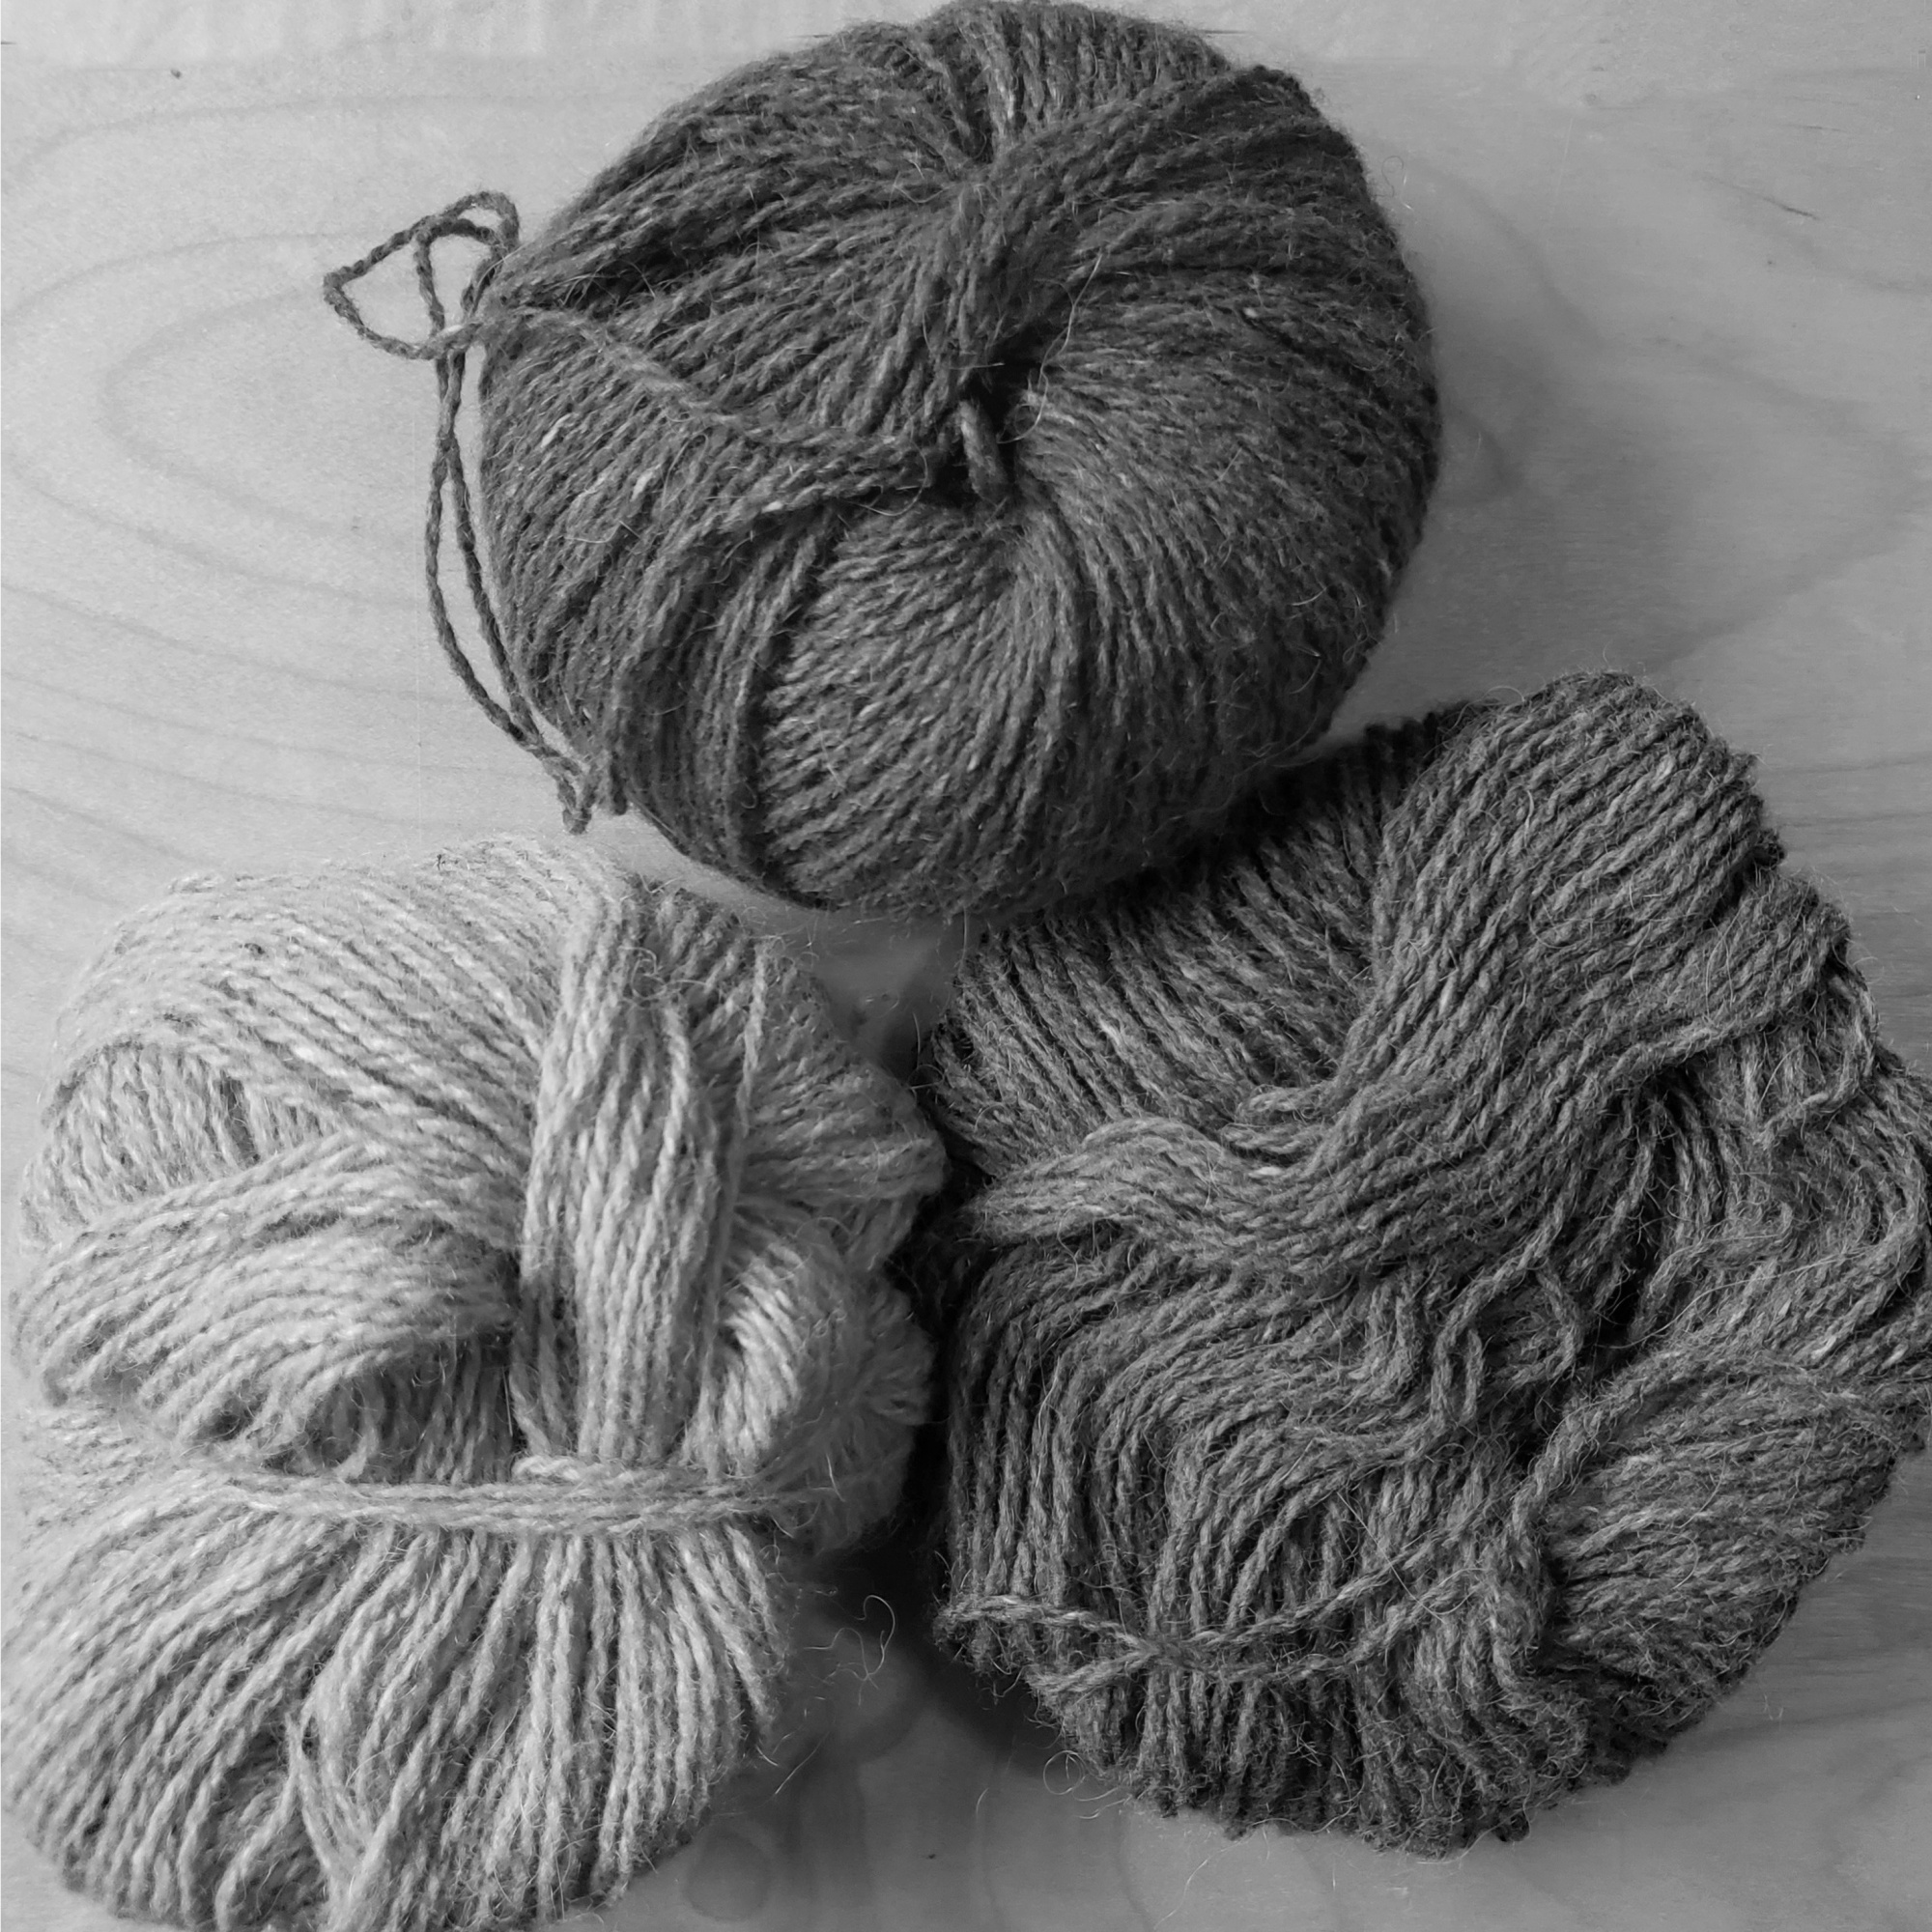 a trio of yarn balls in gray scale showing their contrast